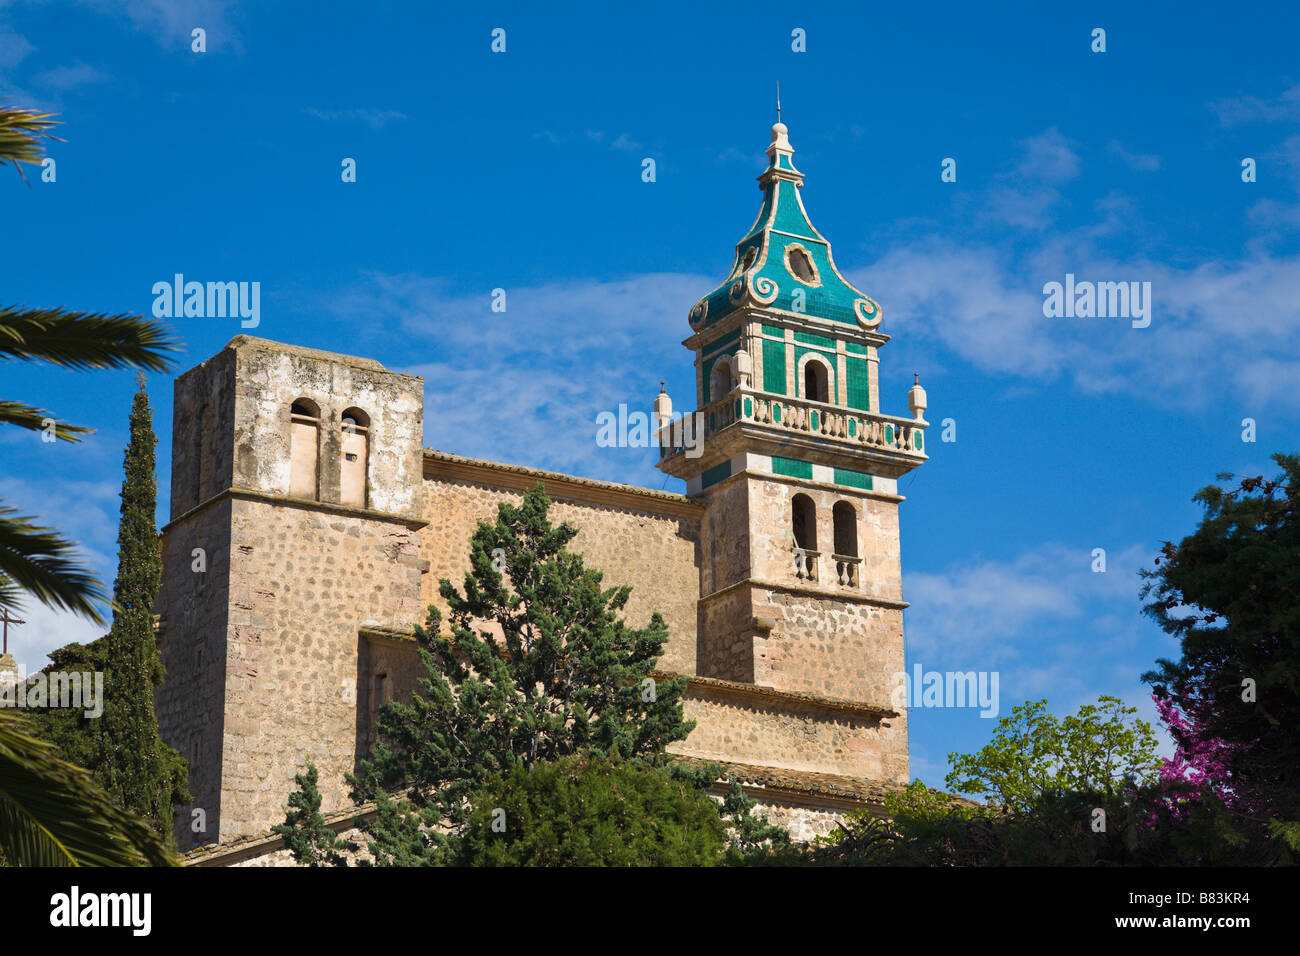 La Cartoixa, Valldemossa, Mallorca, Spain Stock Photo